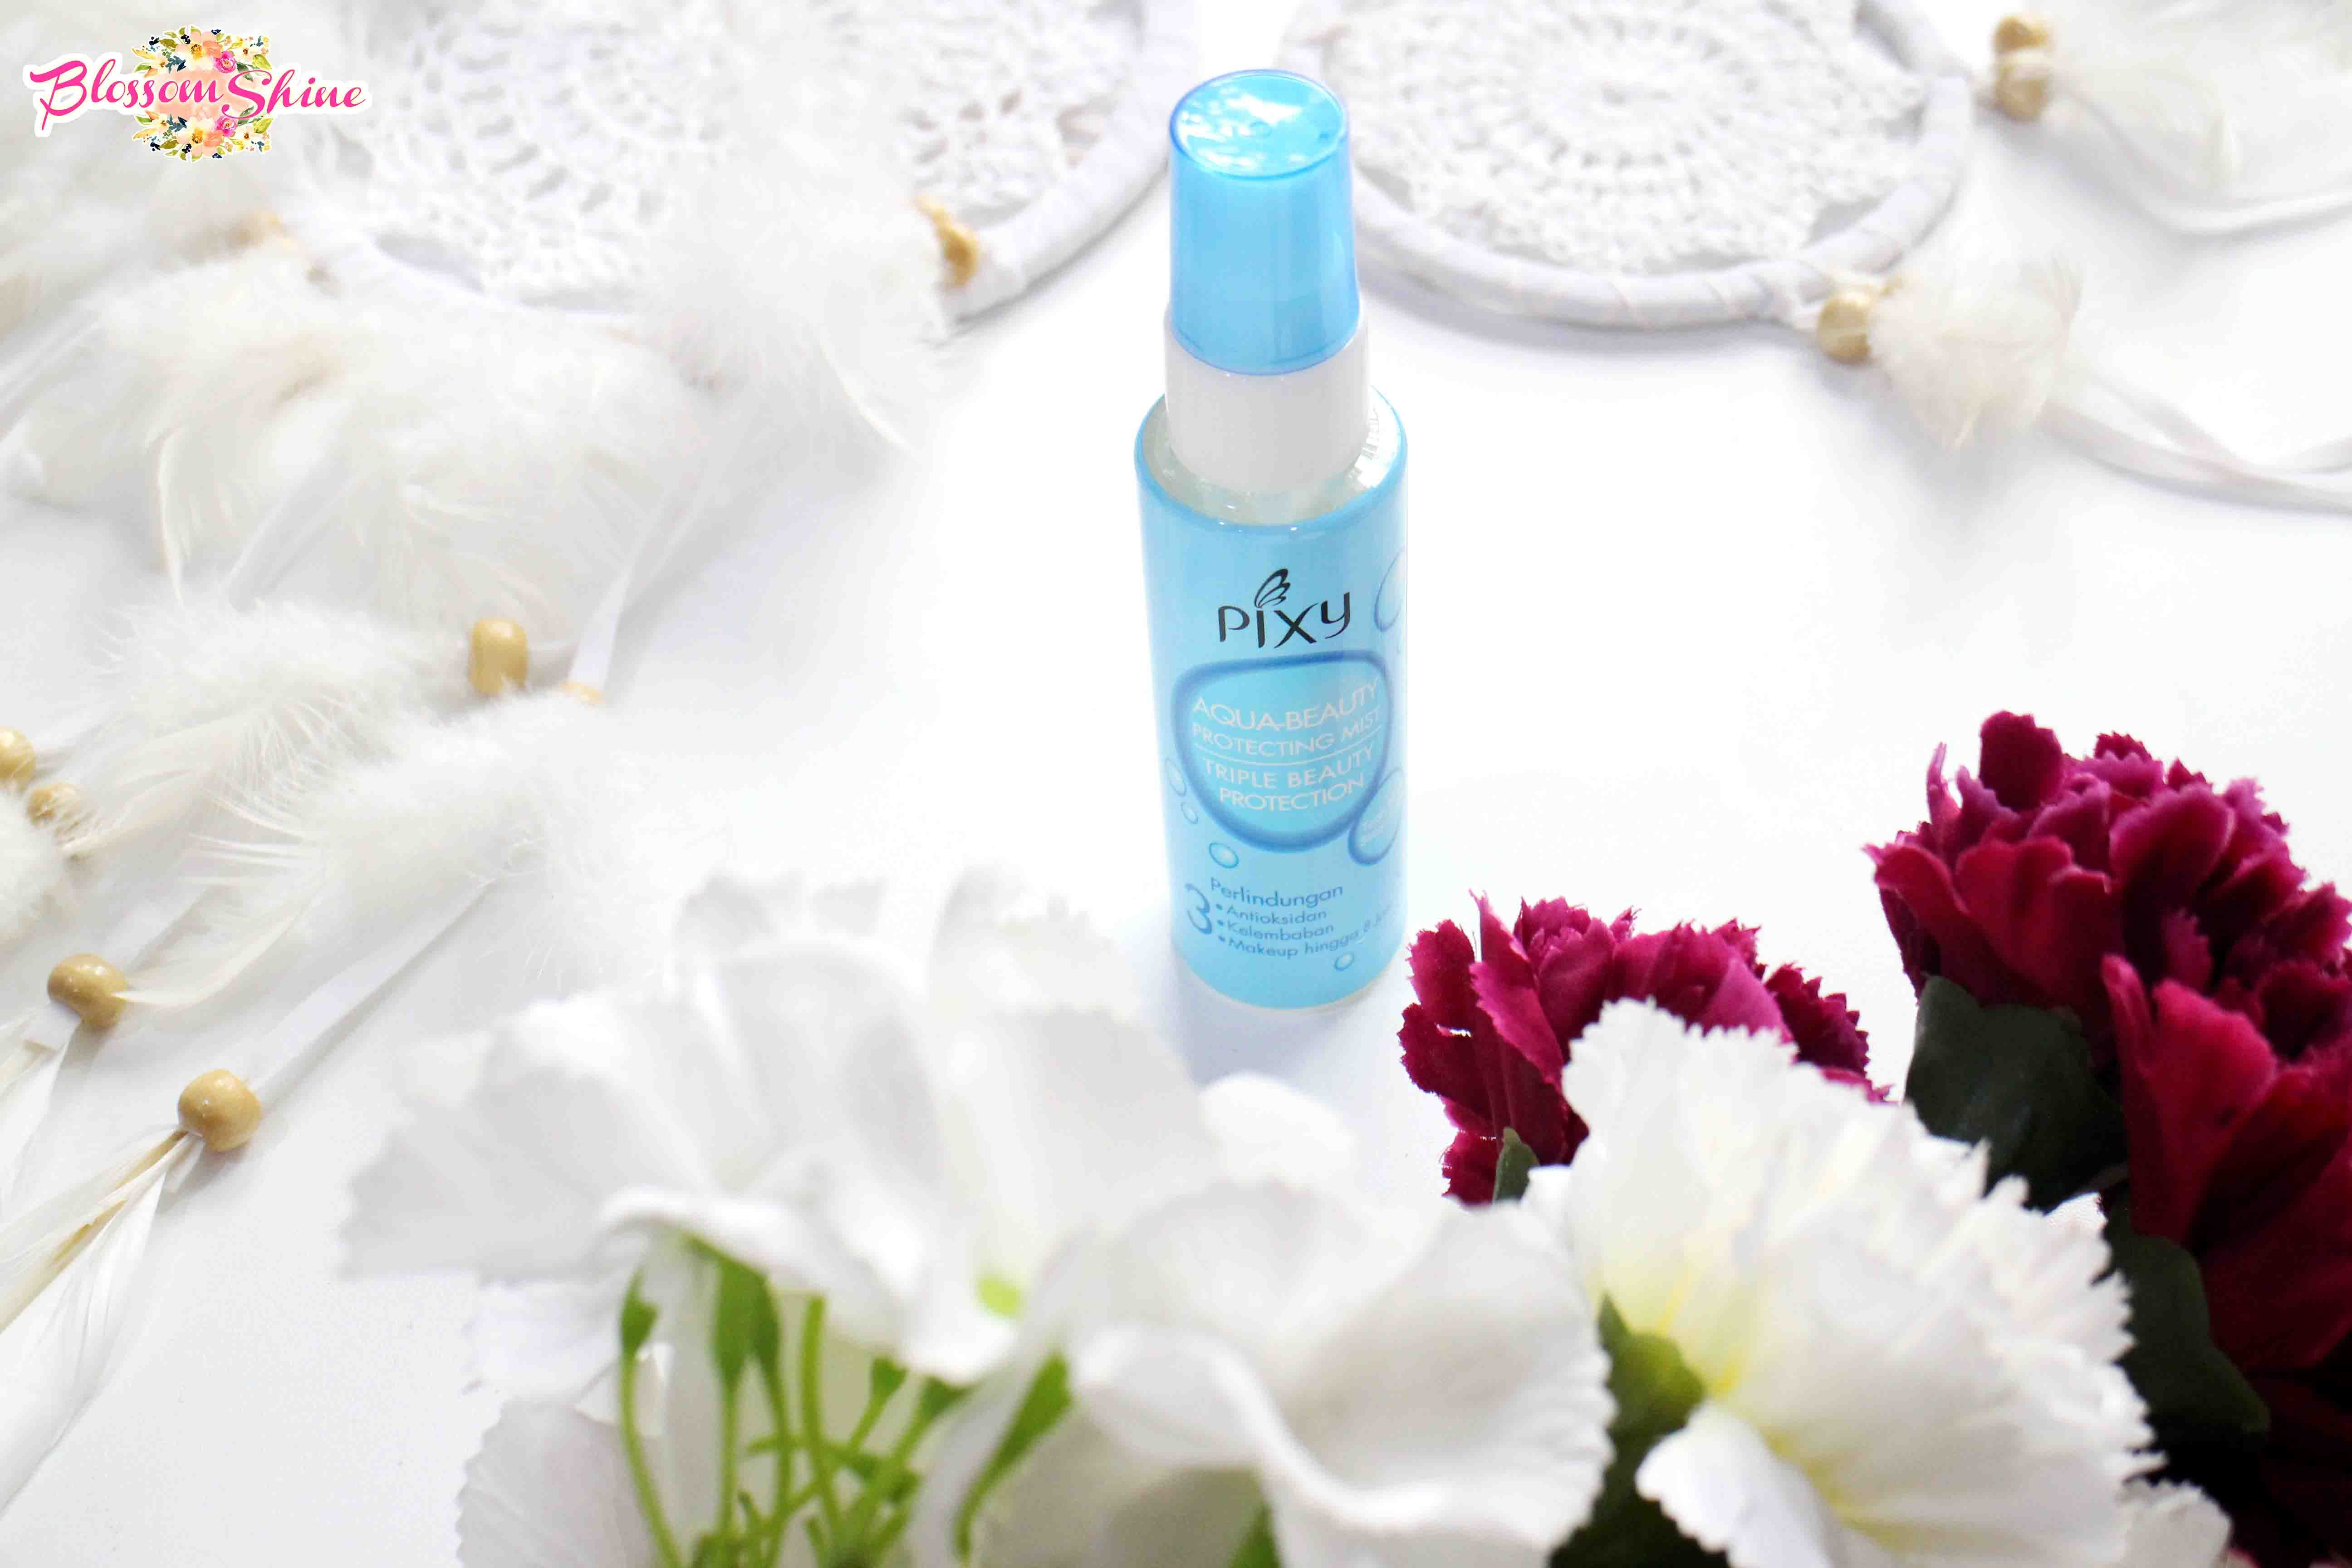 Pixy WhiteAqua Beauty Protection Mist Blossomshine